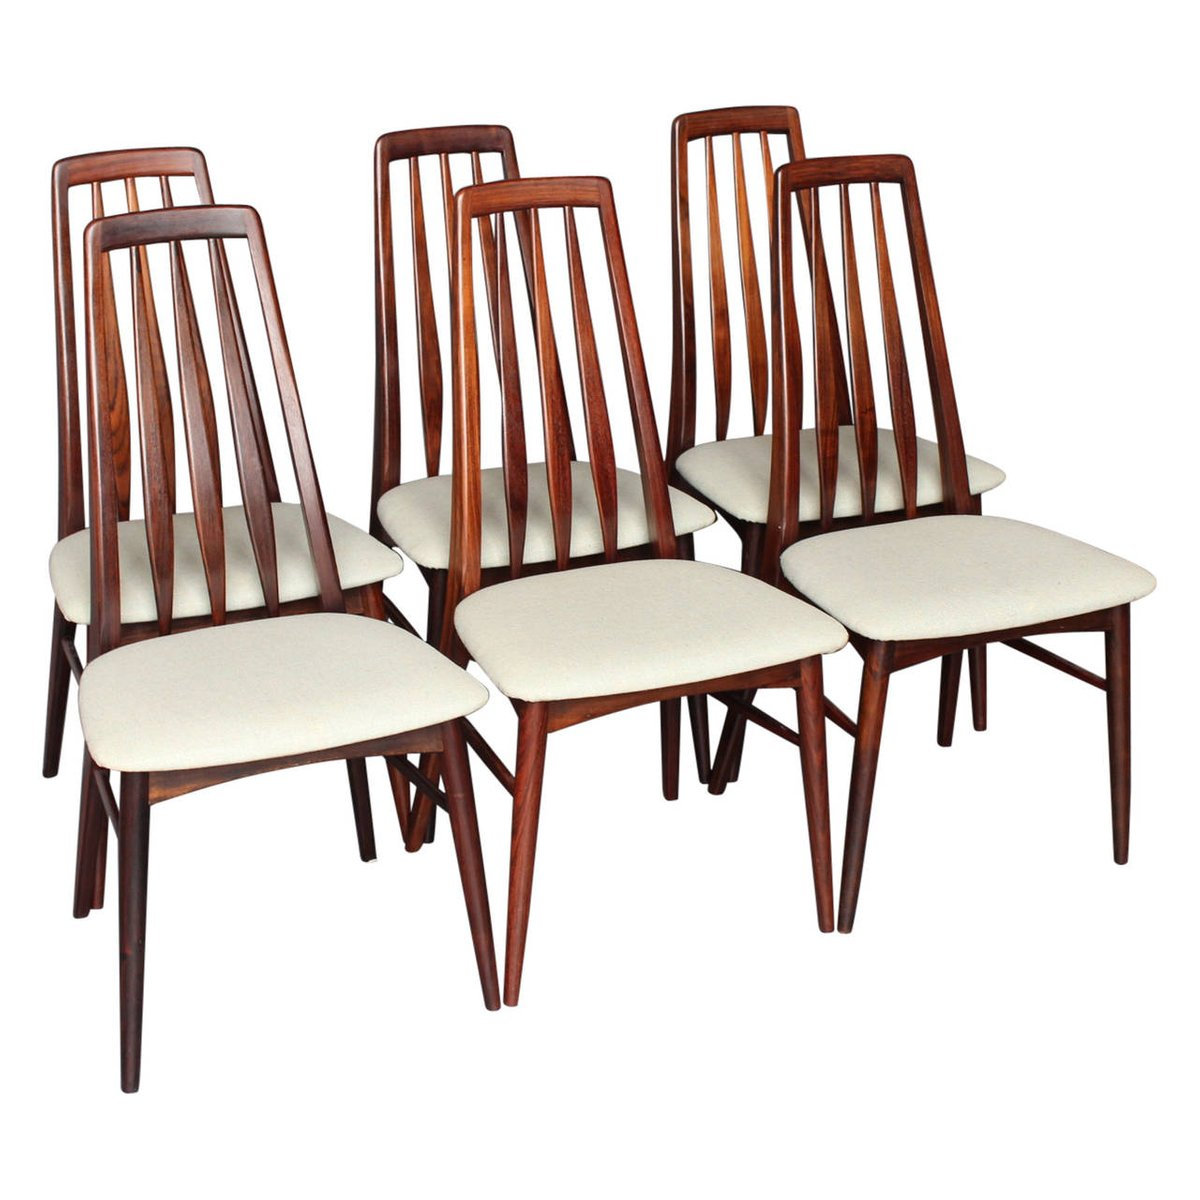 Awesome Eva Chairs By Niels Koefoed For Koefoed Hornslet, 1964, Set Of 6